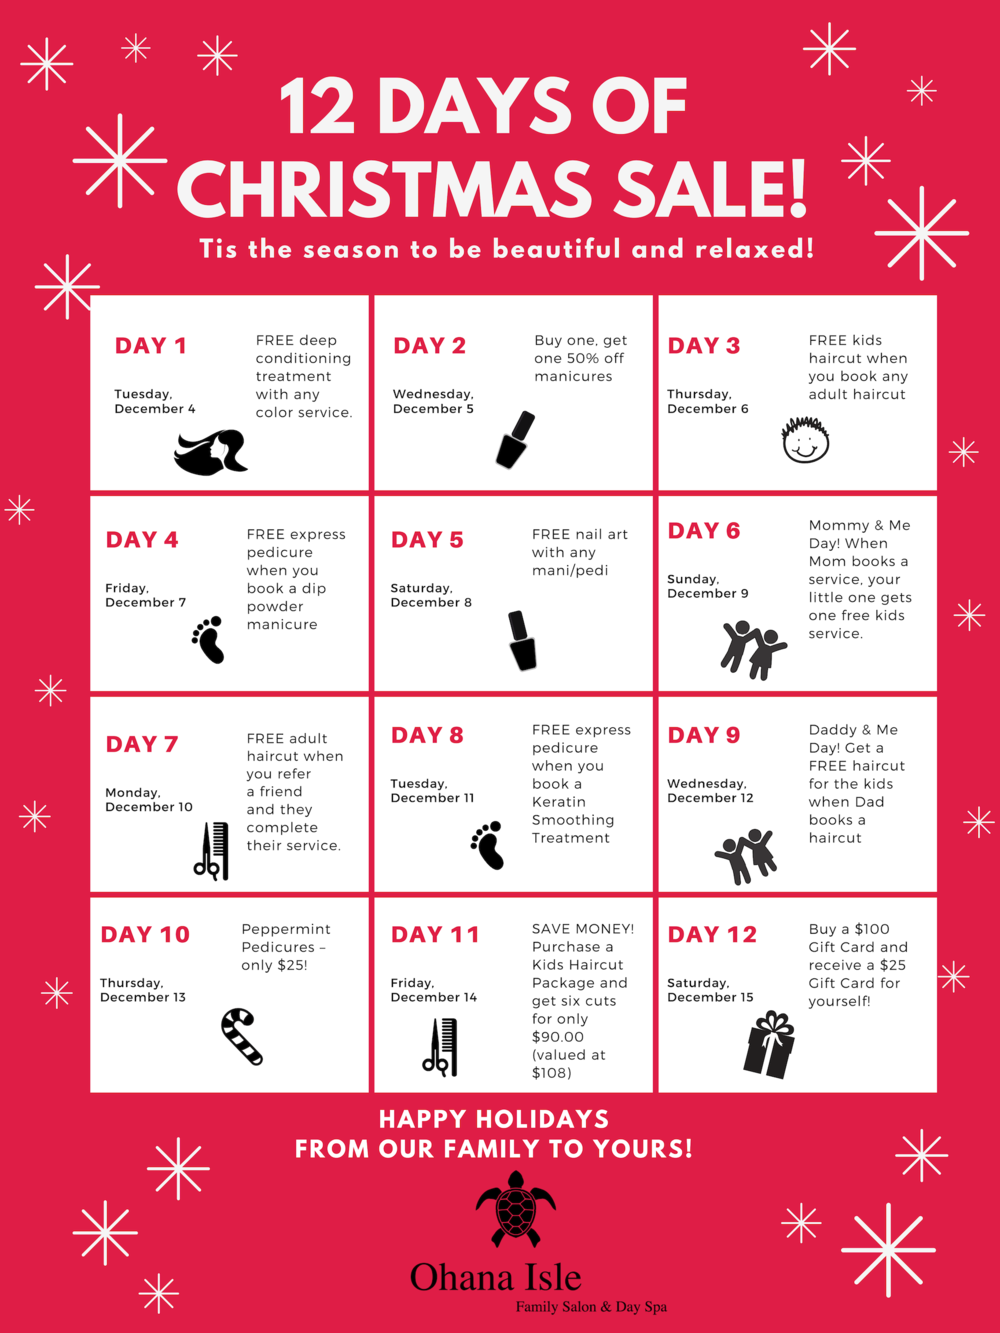 The 12 Days of Christmas sale!.png